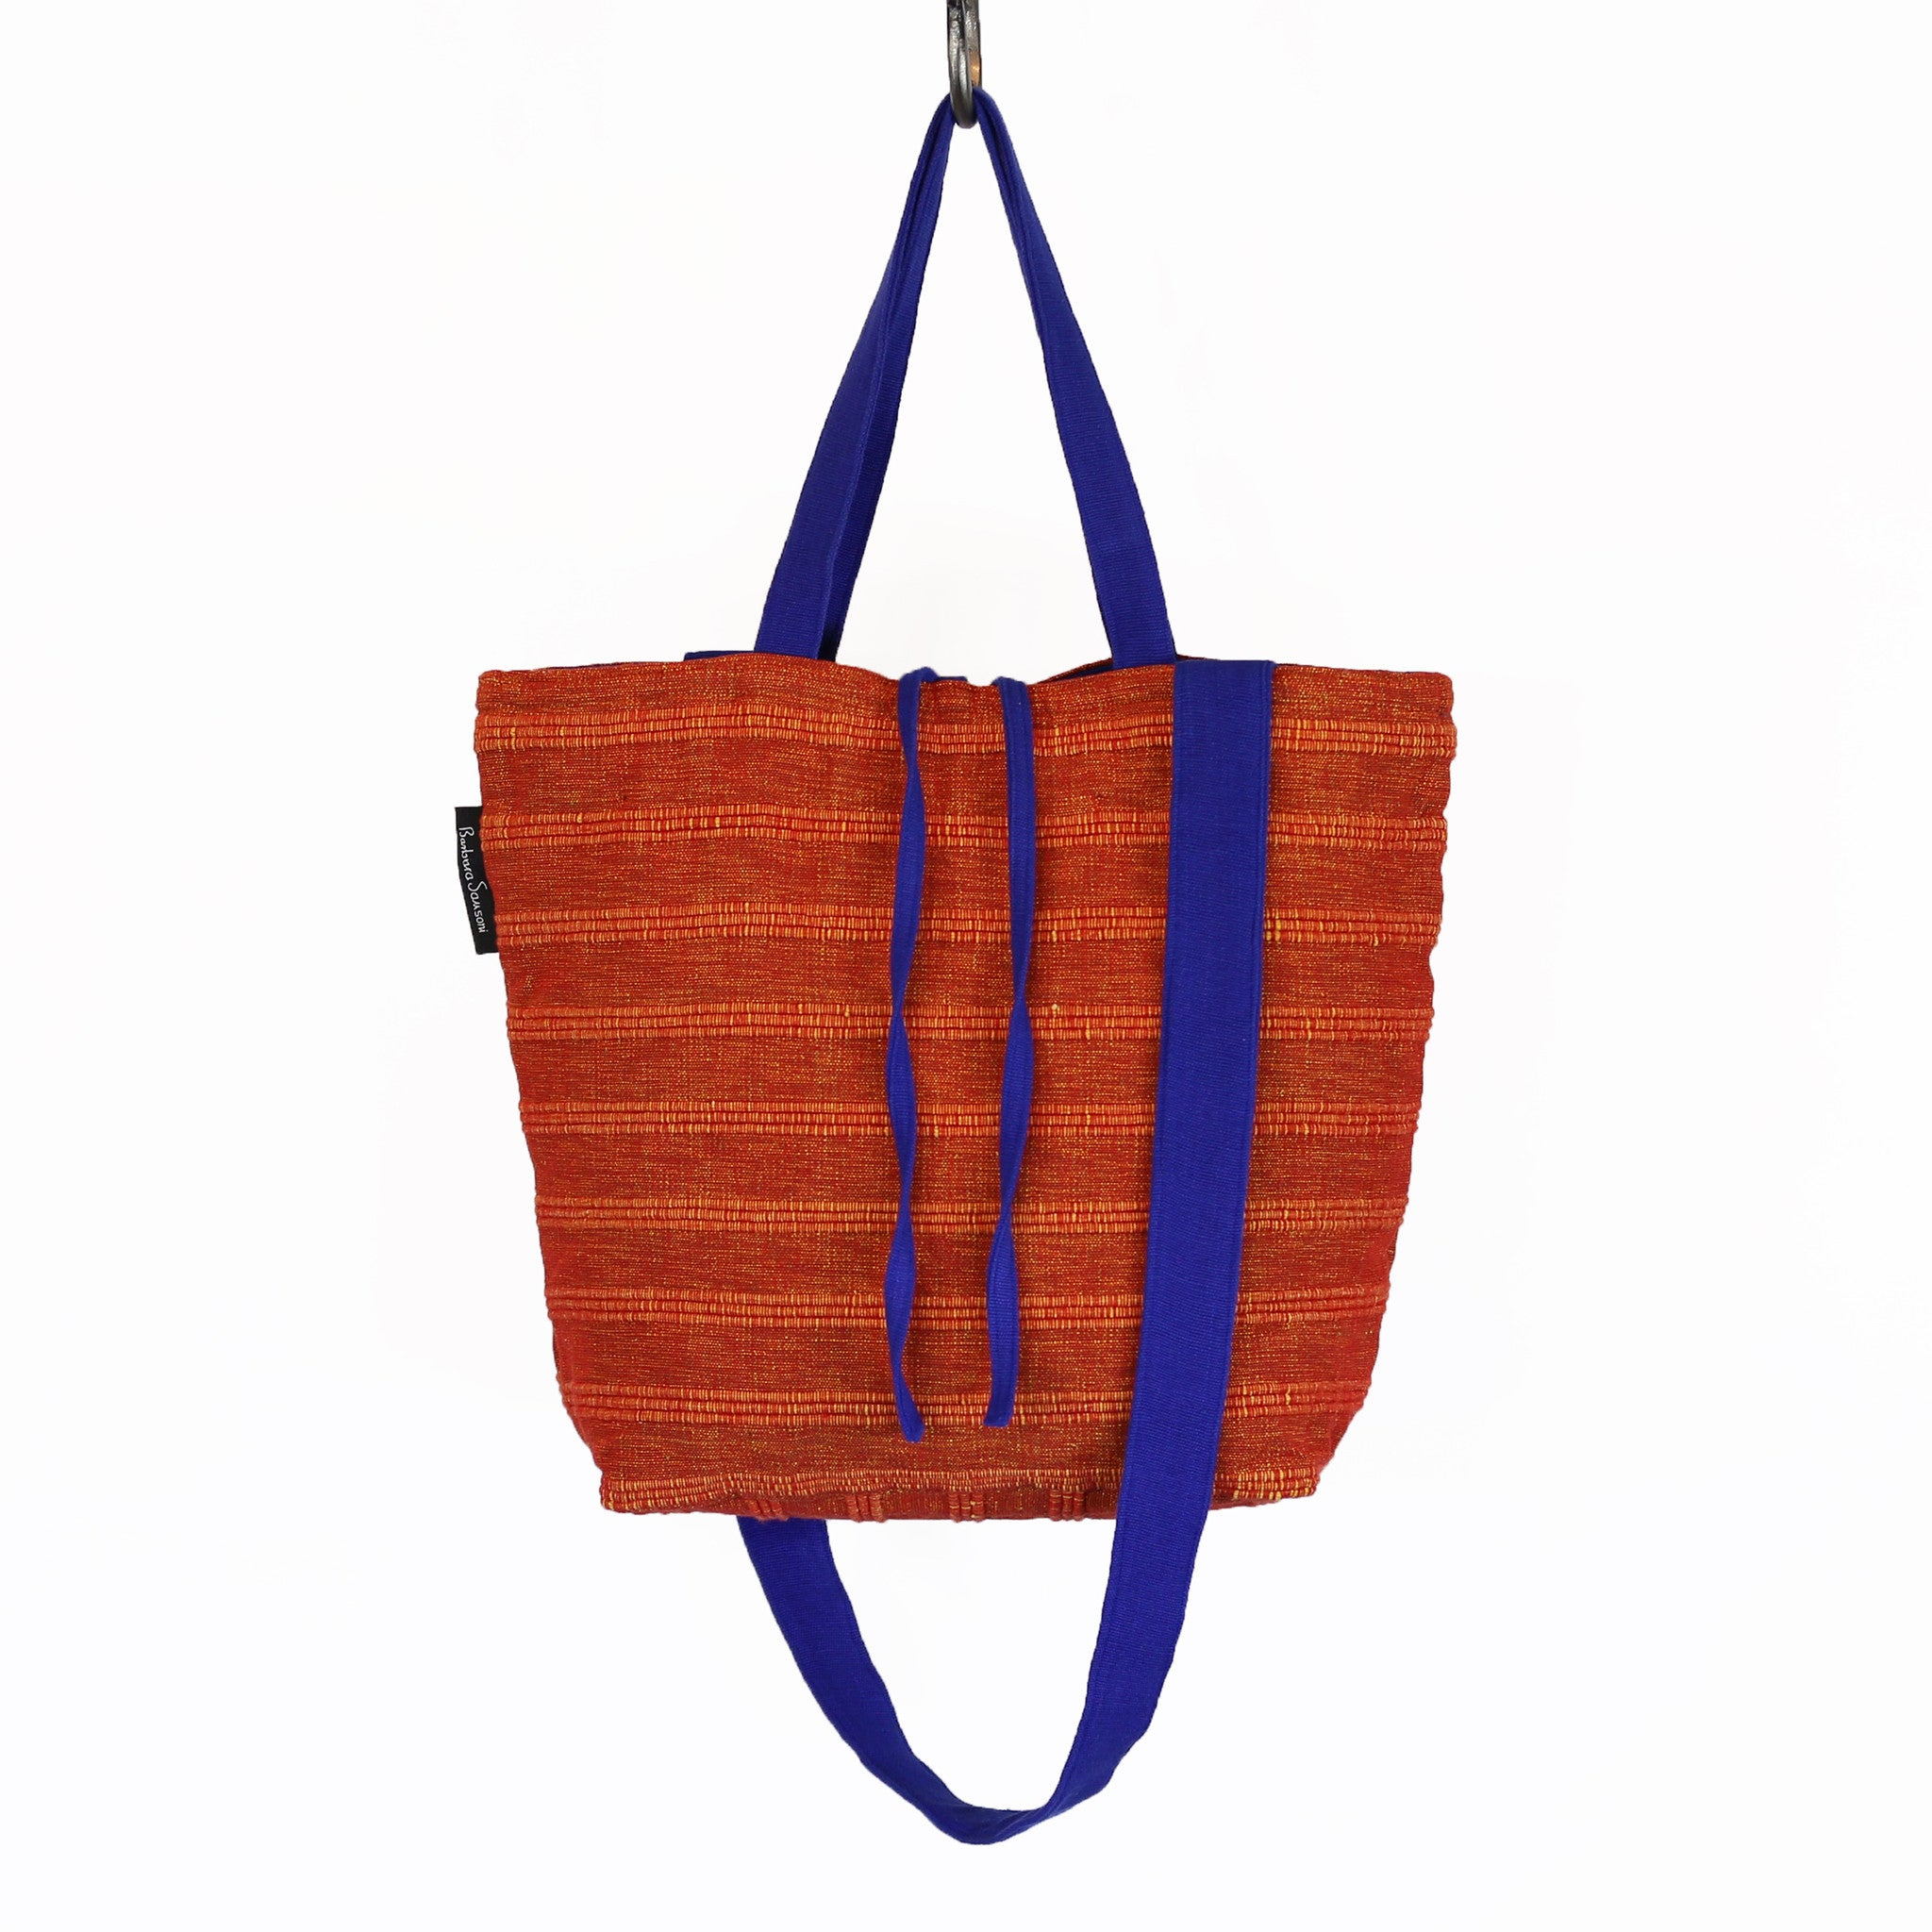 The Everyday Crossbody/Tote – Coral Reef fabric shown